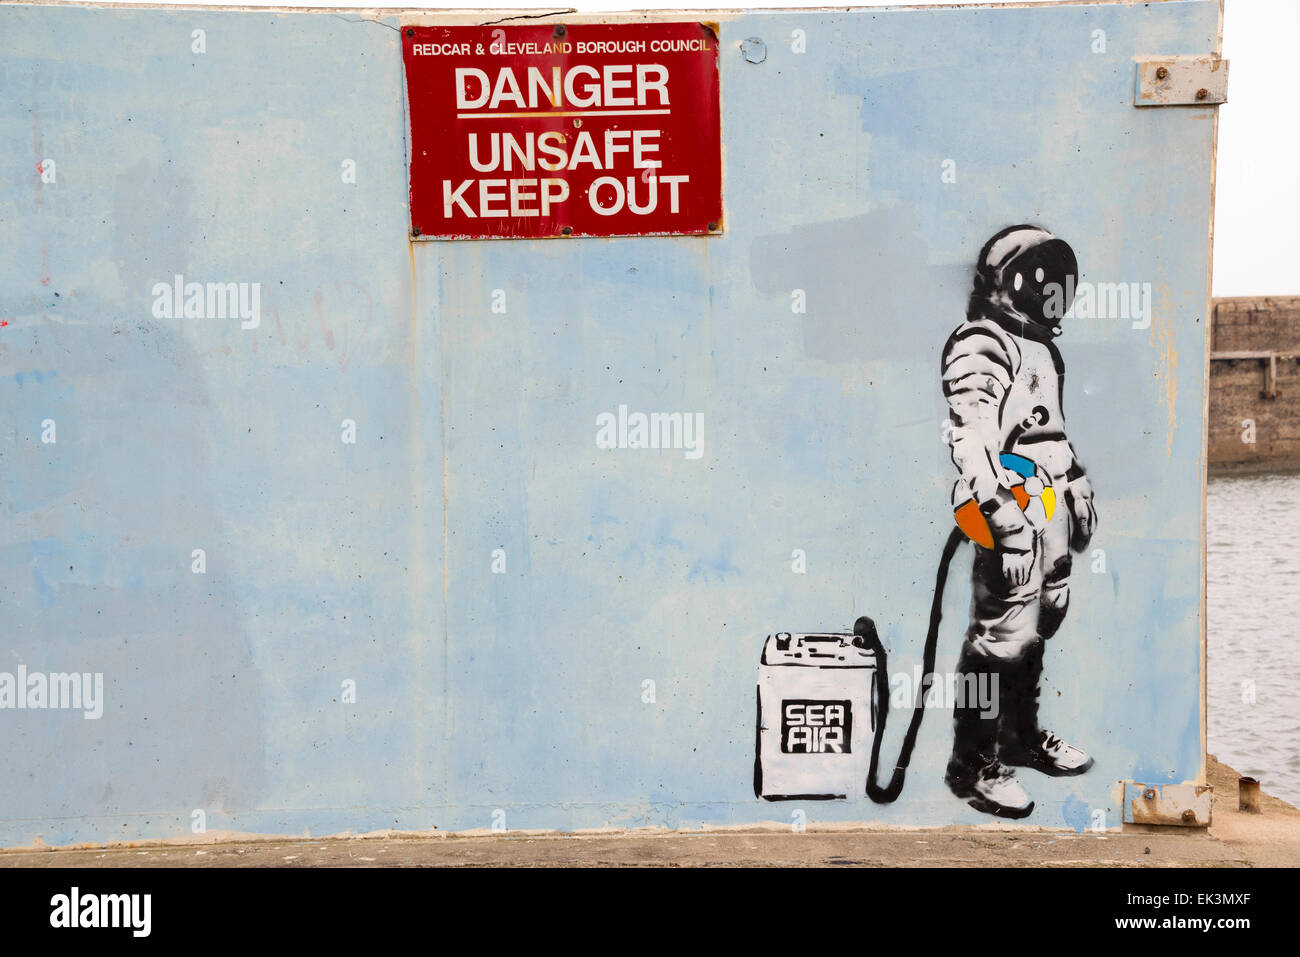 Danger Unsafe Keep Out sign at derelict pier. - Stock Image